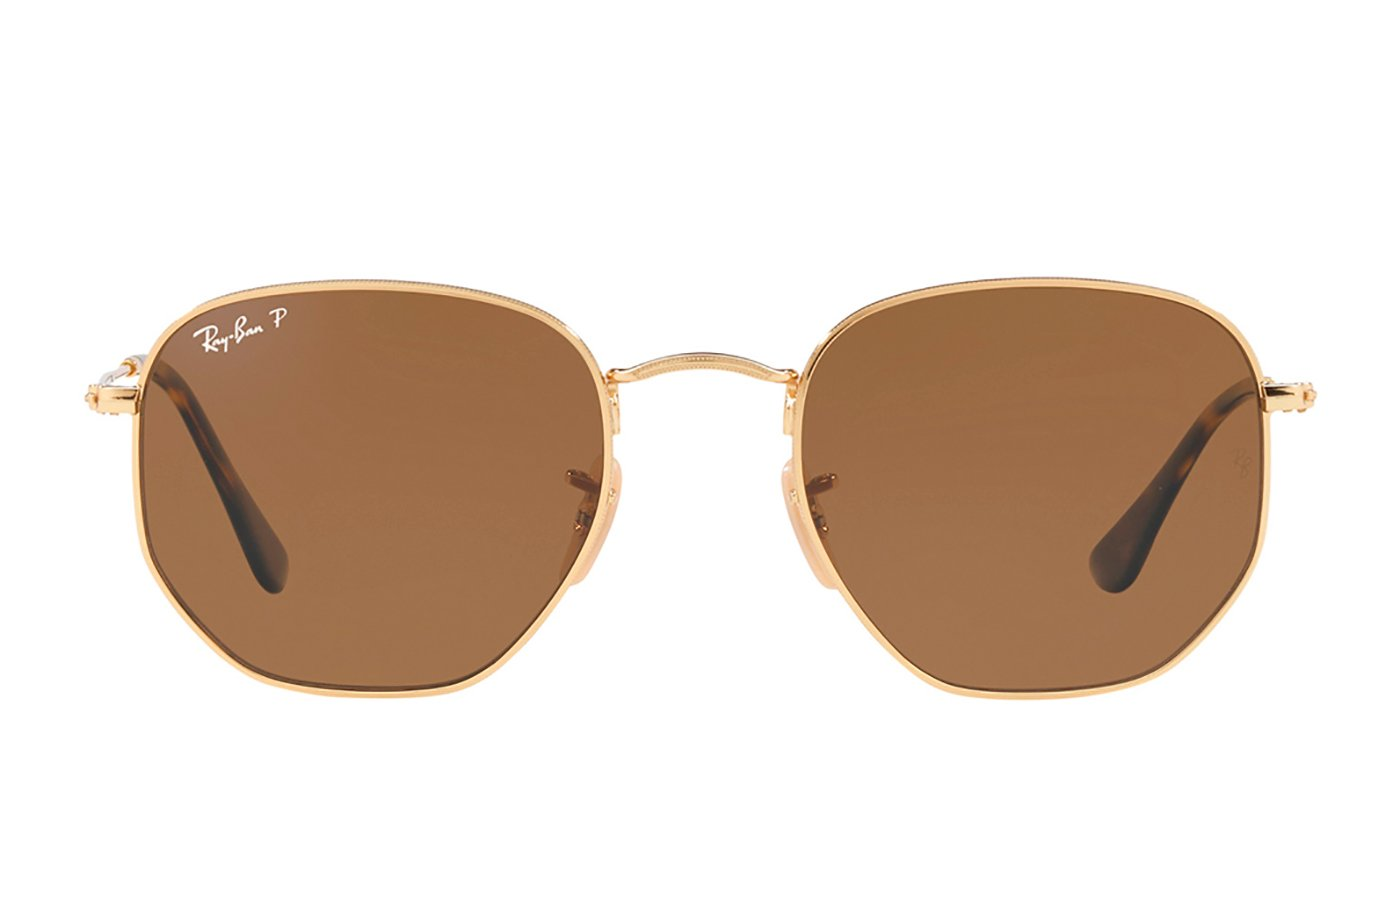 RAY-BAN HEXAGONAL GOLD 0RB3548N 51 001/57 POLARIZADA